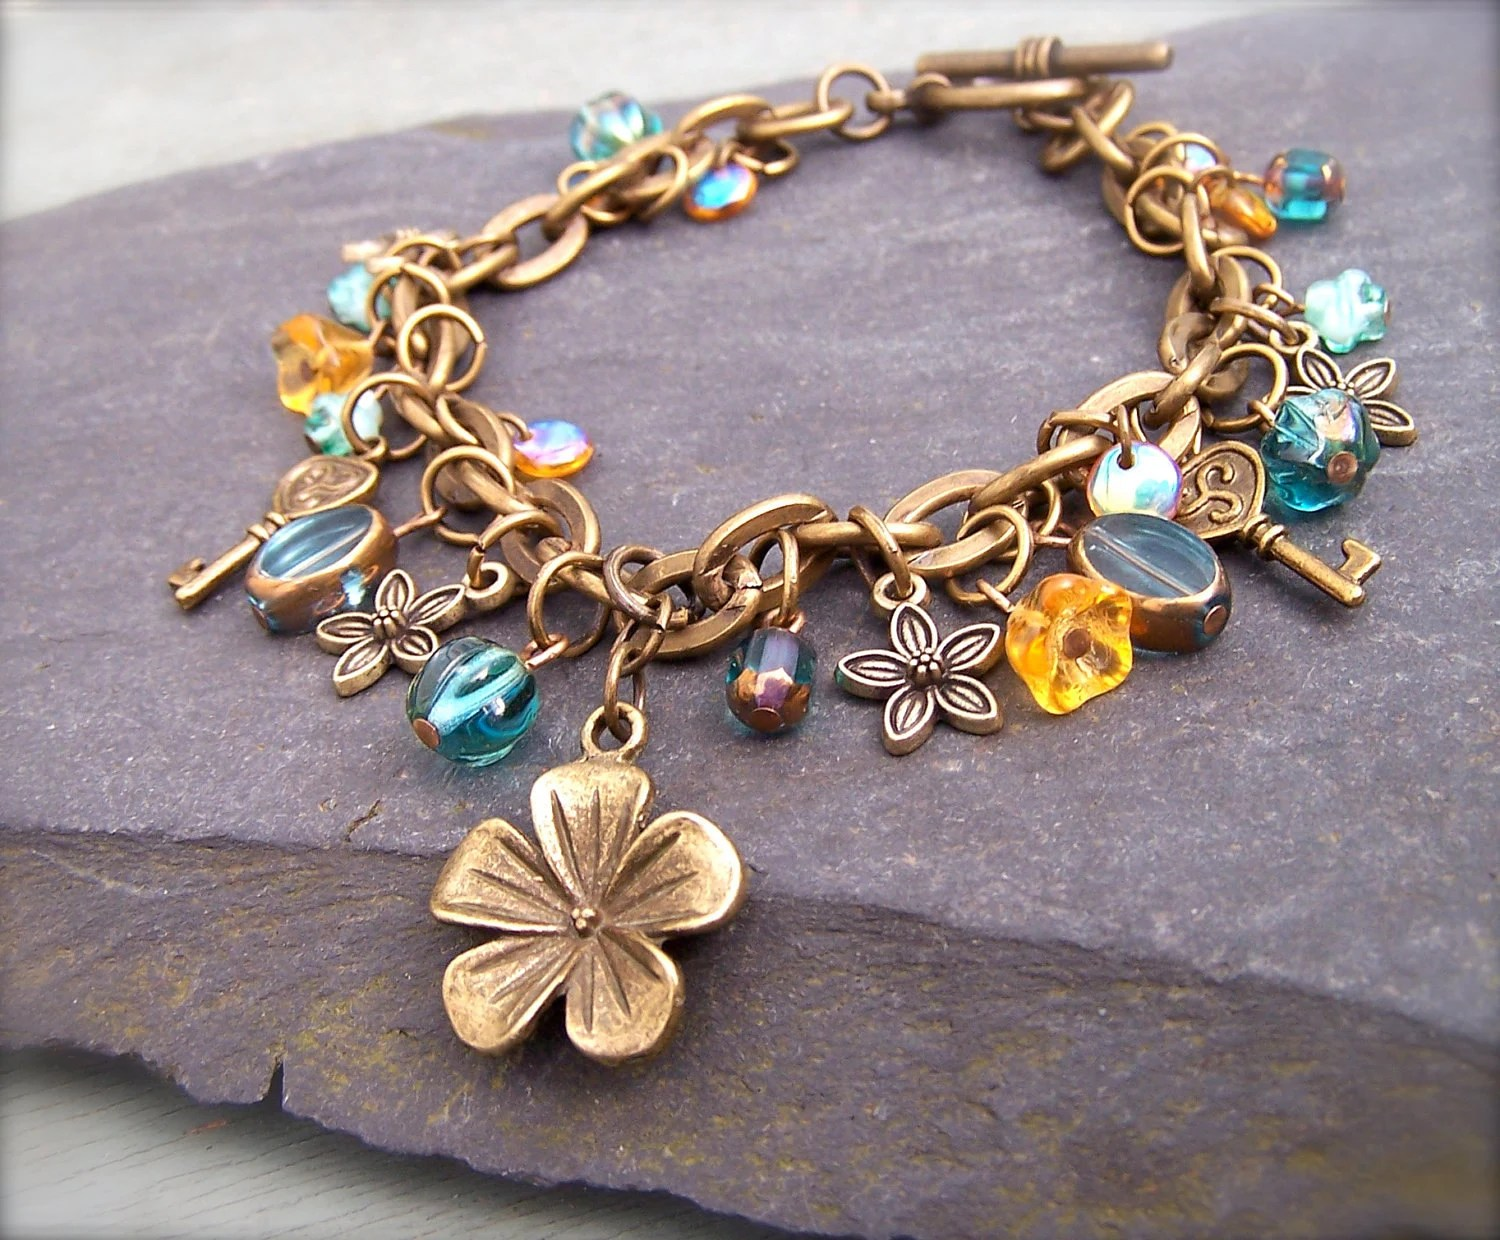 Brass Charm Bracelet, Antique Brass Flower Charm, Aqua Blue, Pale Yellow Beads, Keys, Flowers - Phoebedreams